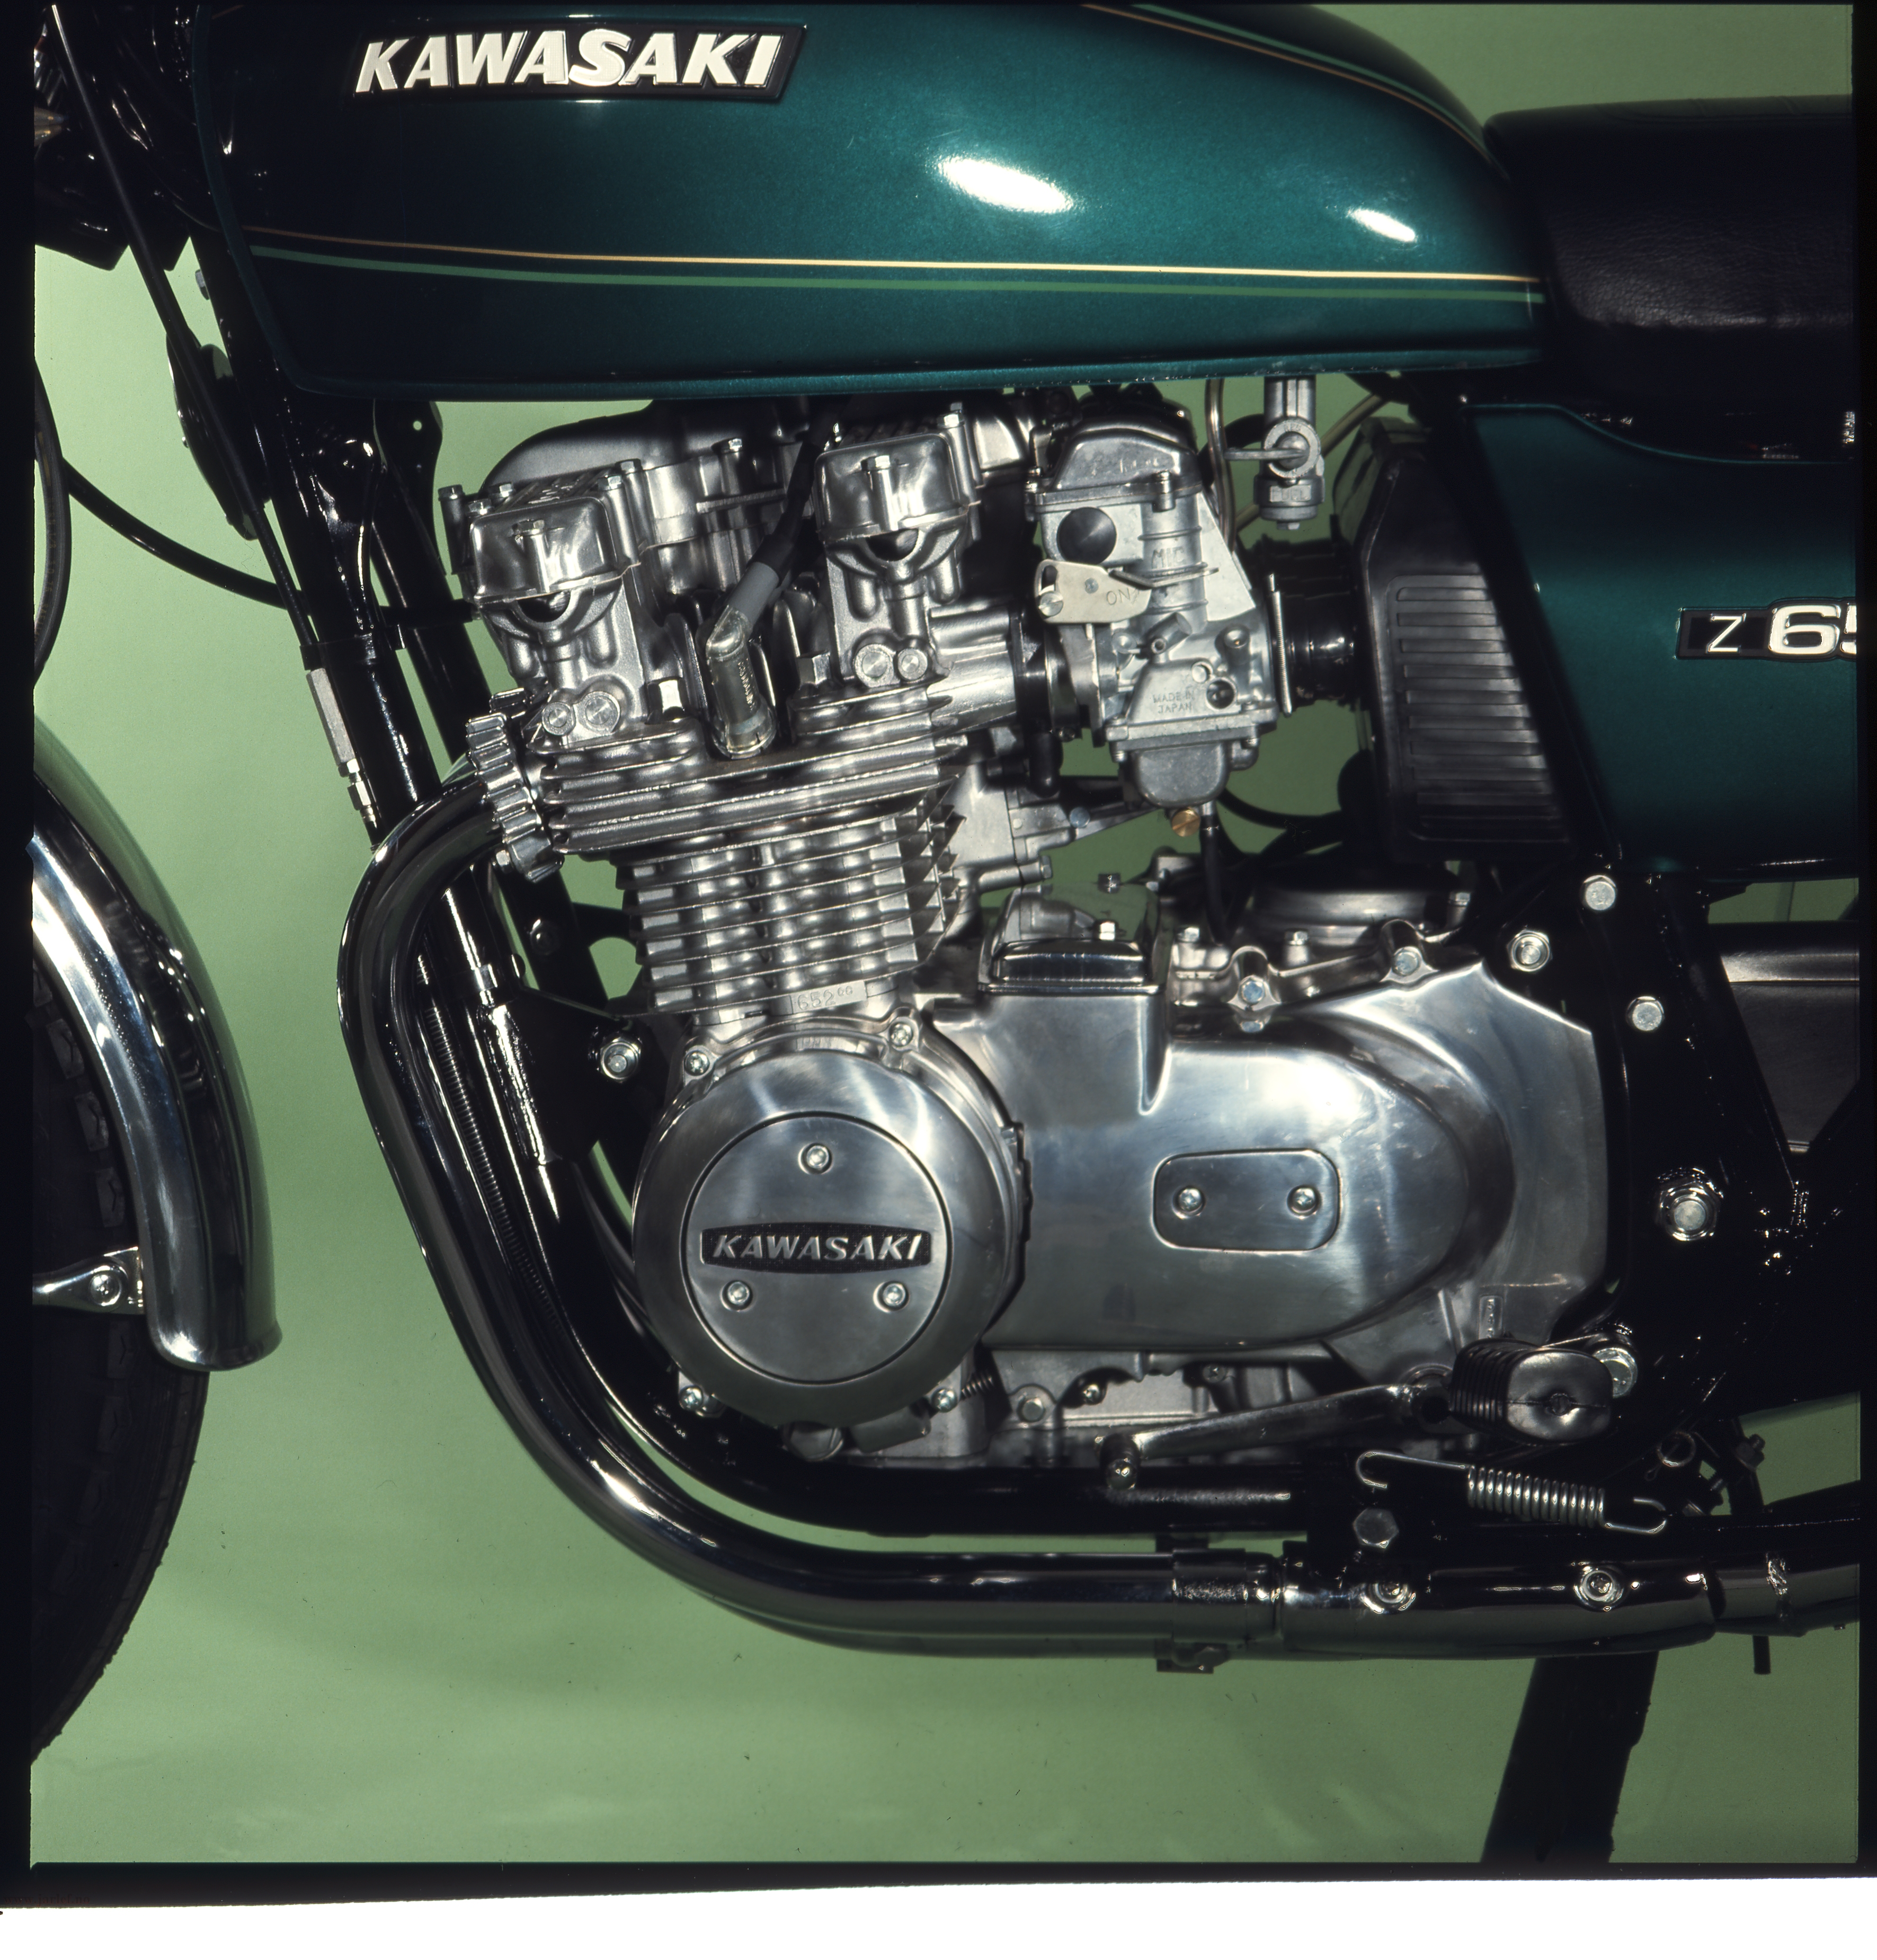 Z650 1976 to 1983